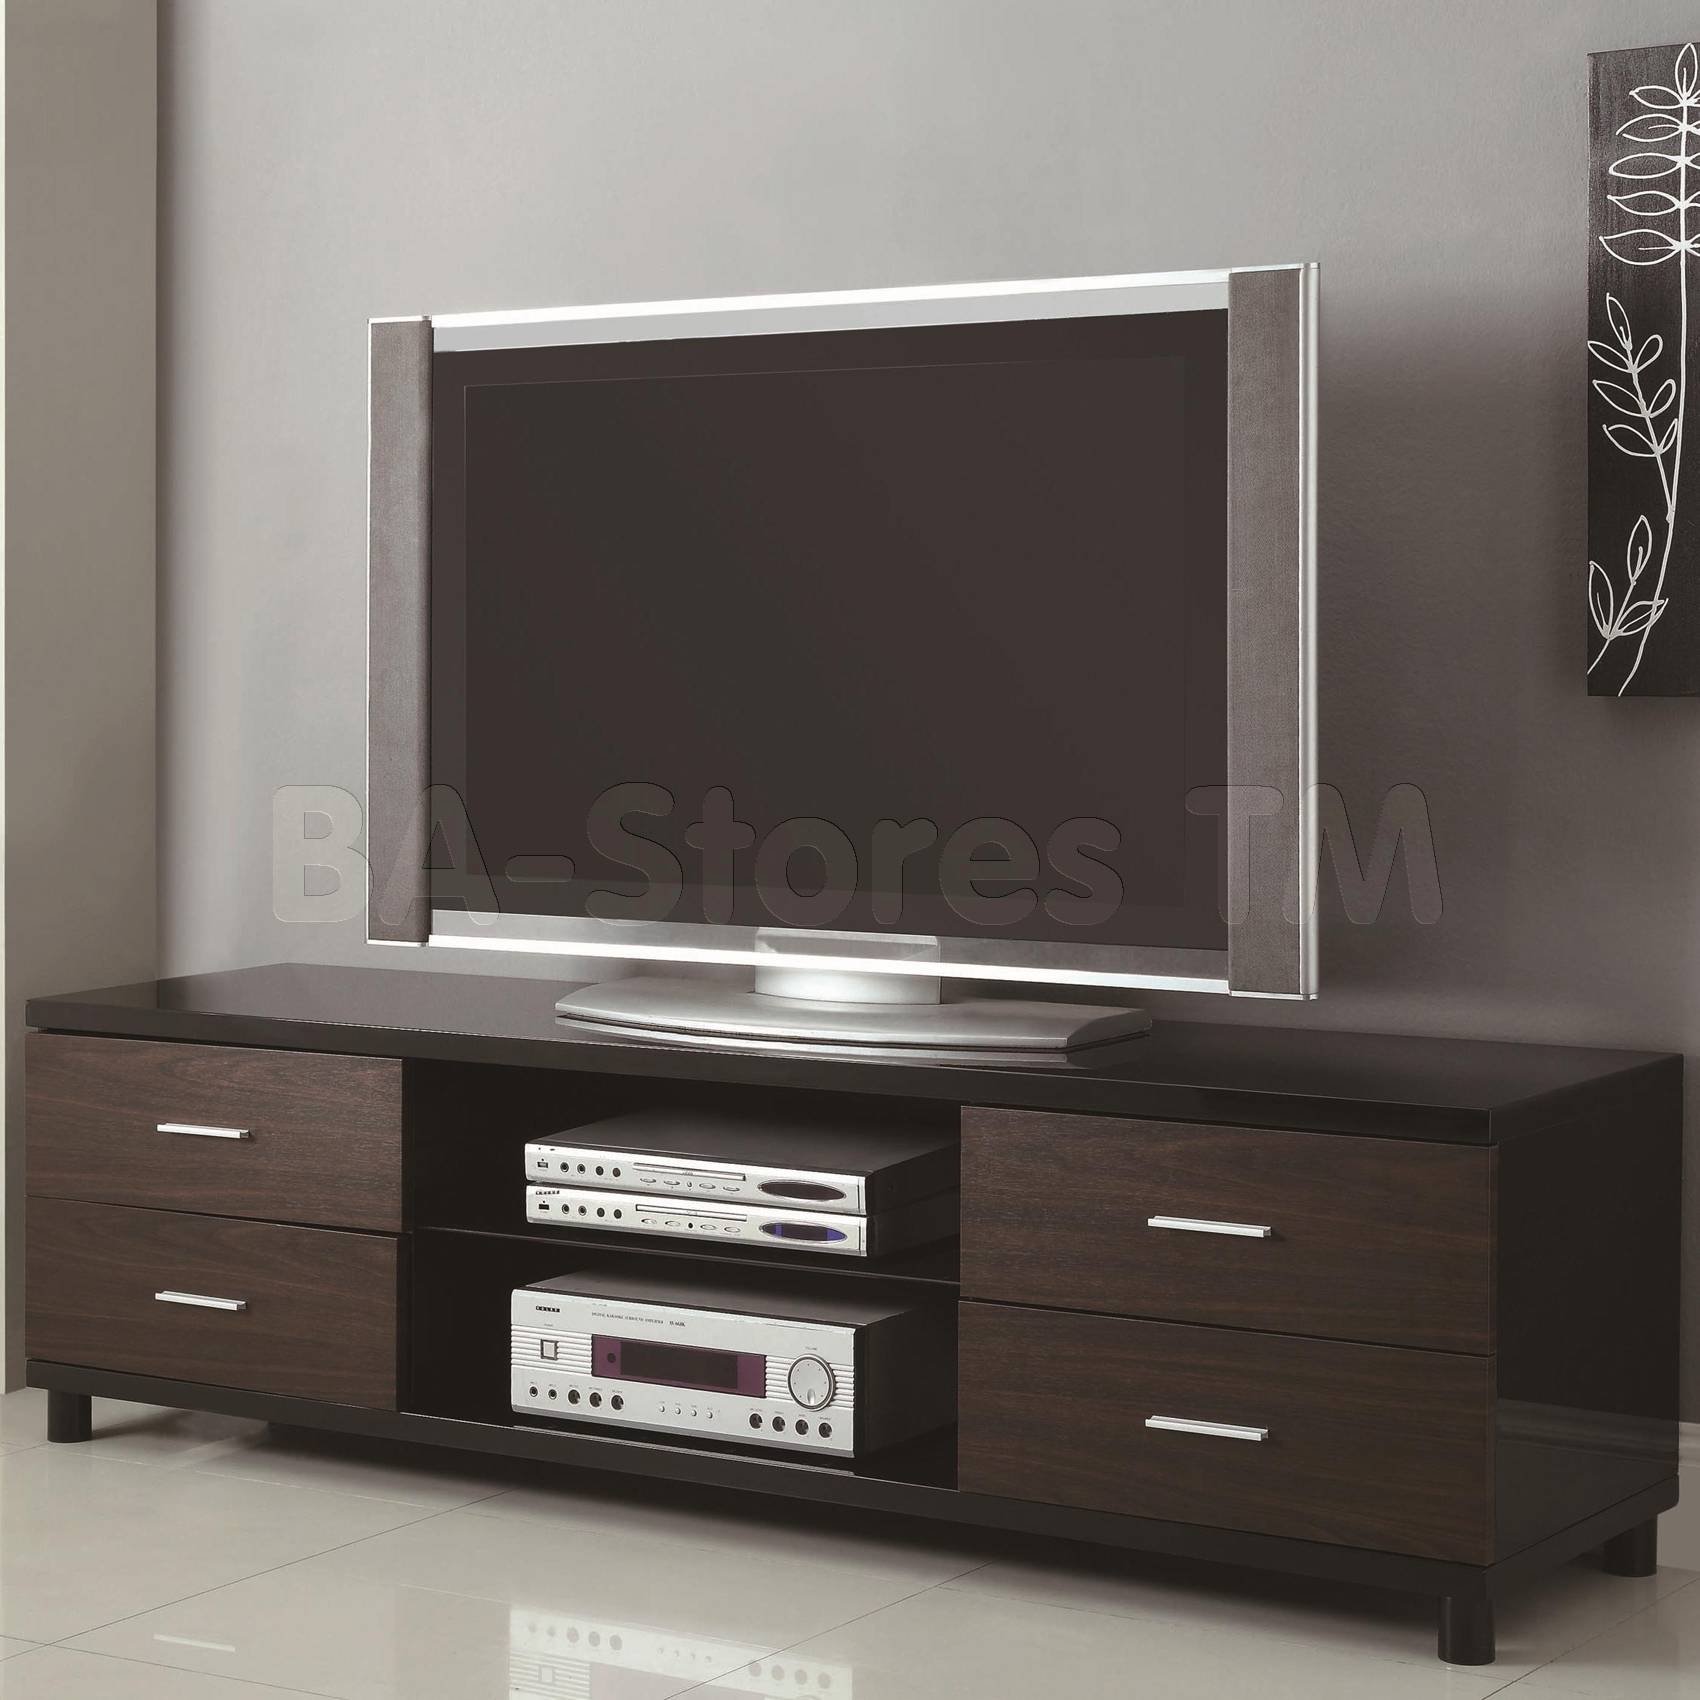 Contemporary Tv Stand With Four Storage Drawers & Two Shelves | Tv Throughout Tv Stands With Drawers And Shelves (View 9 of 15)